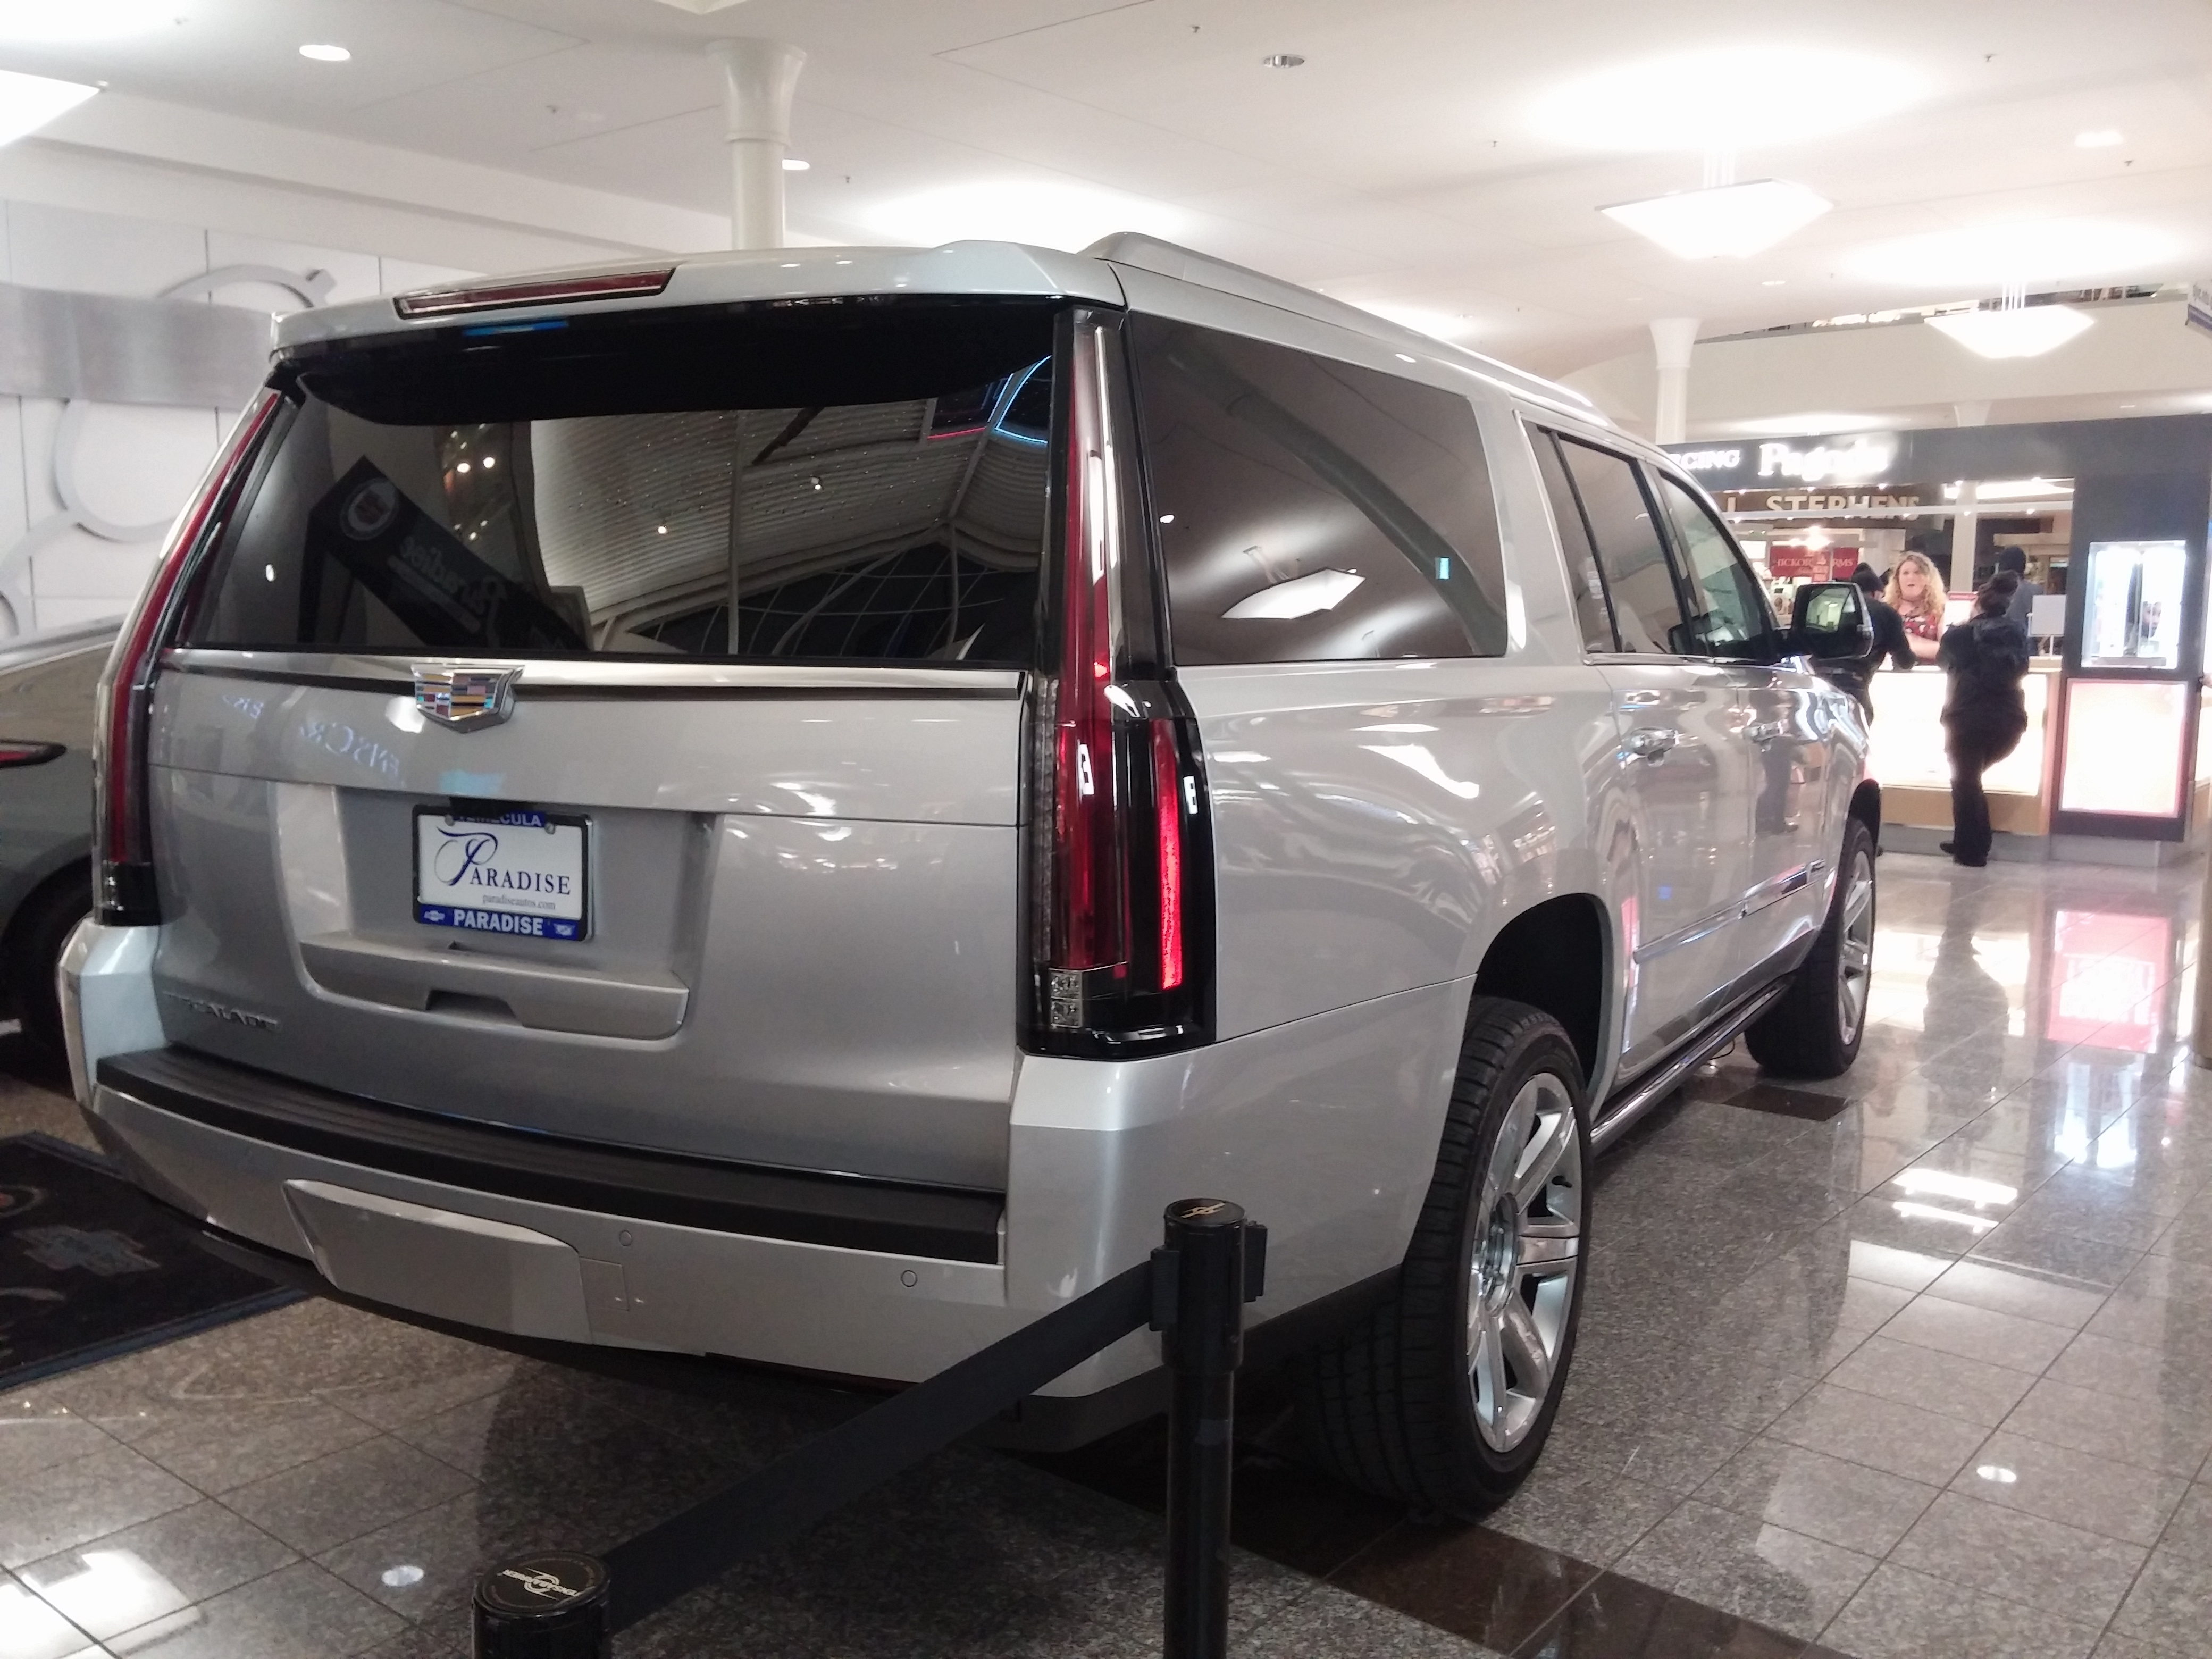 File Cadillac Escalade Suv Jpg Wikimedia Commons